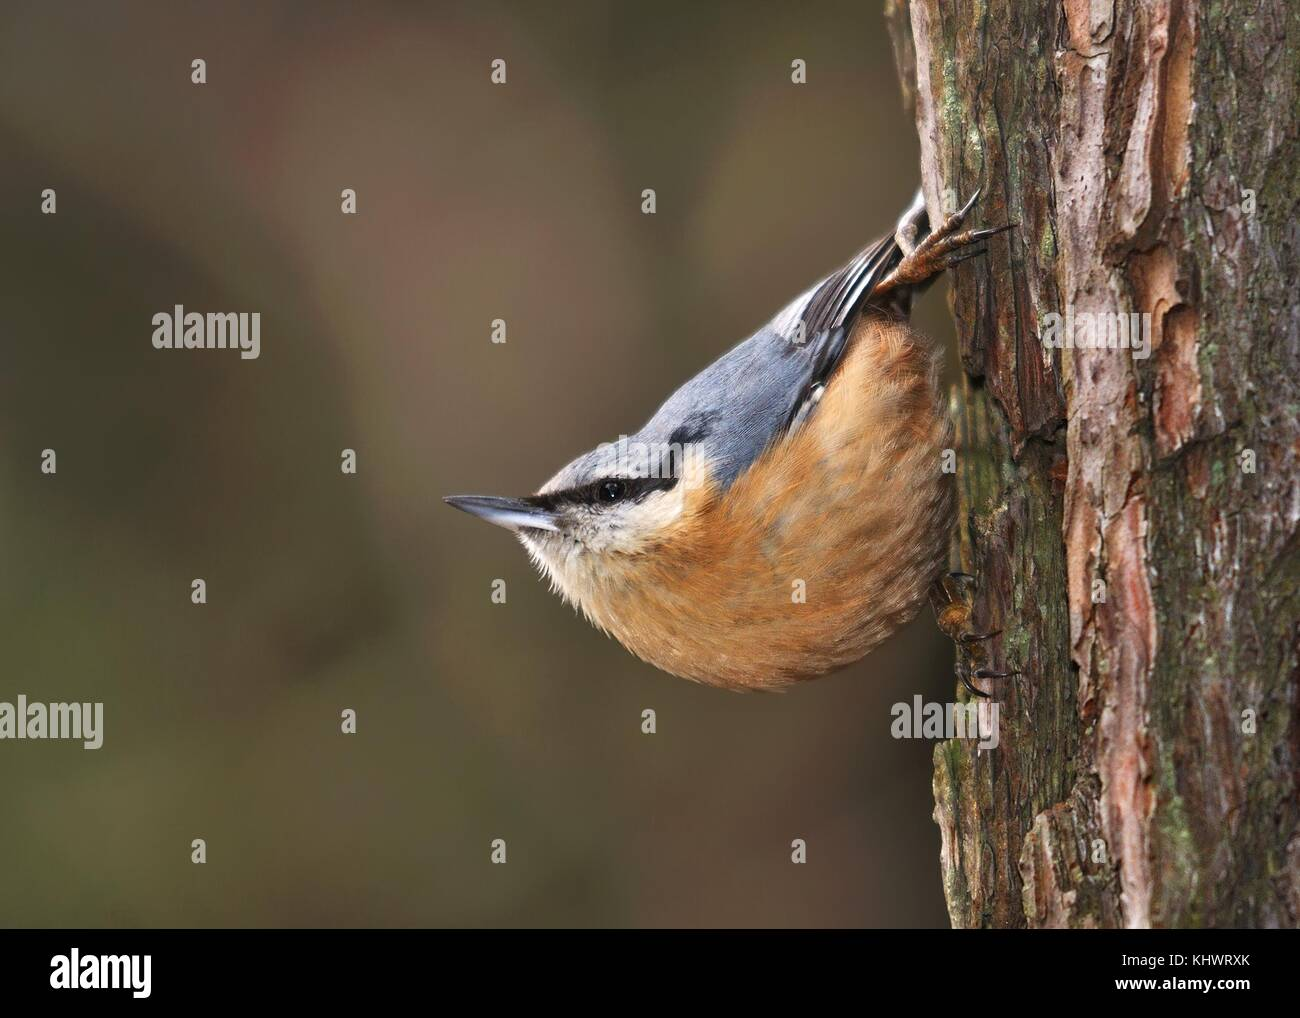 Eurasian Nuthatch - Sitta europaea sitting on the tree trunk - Stock Image